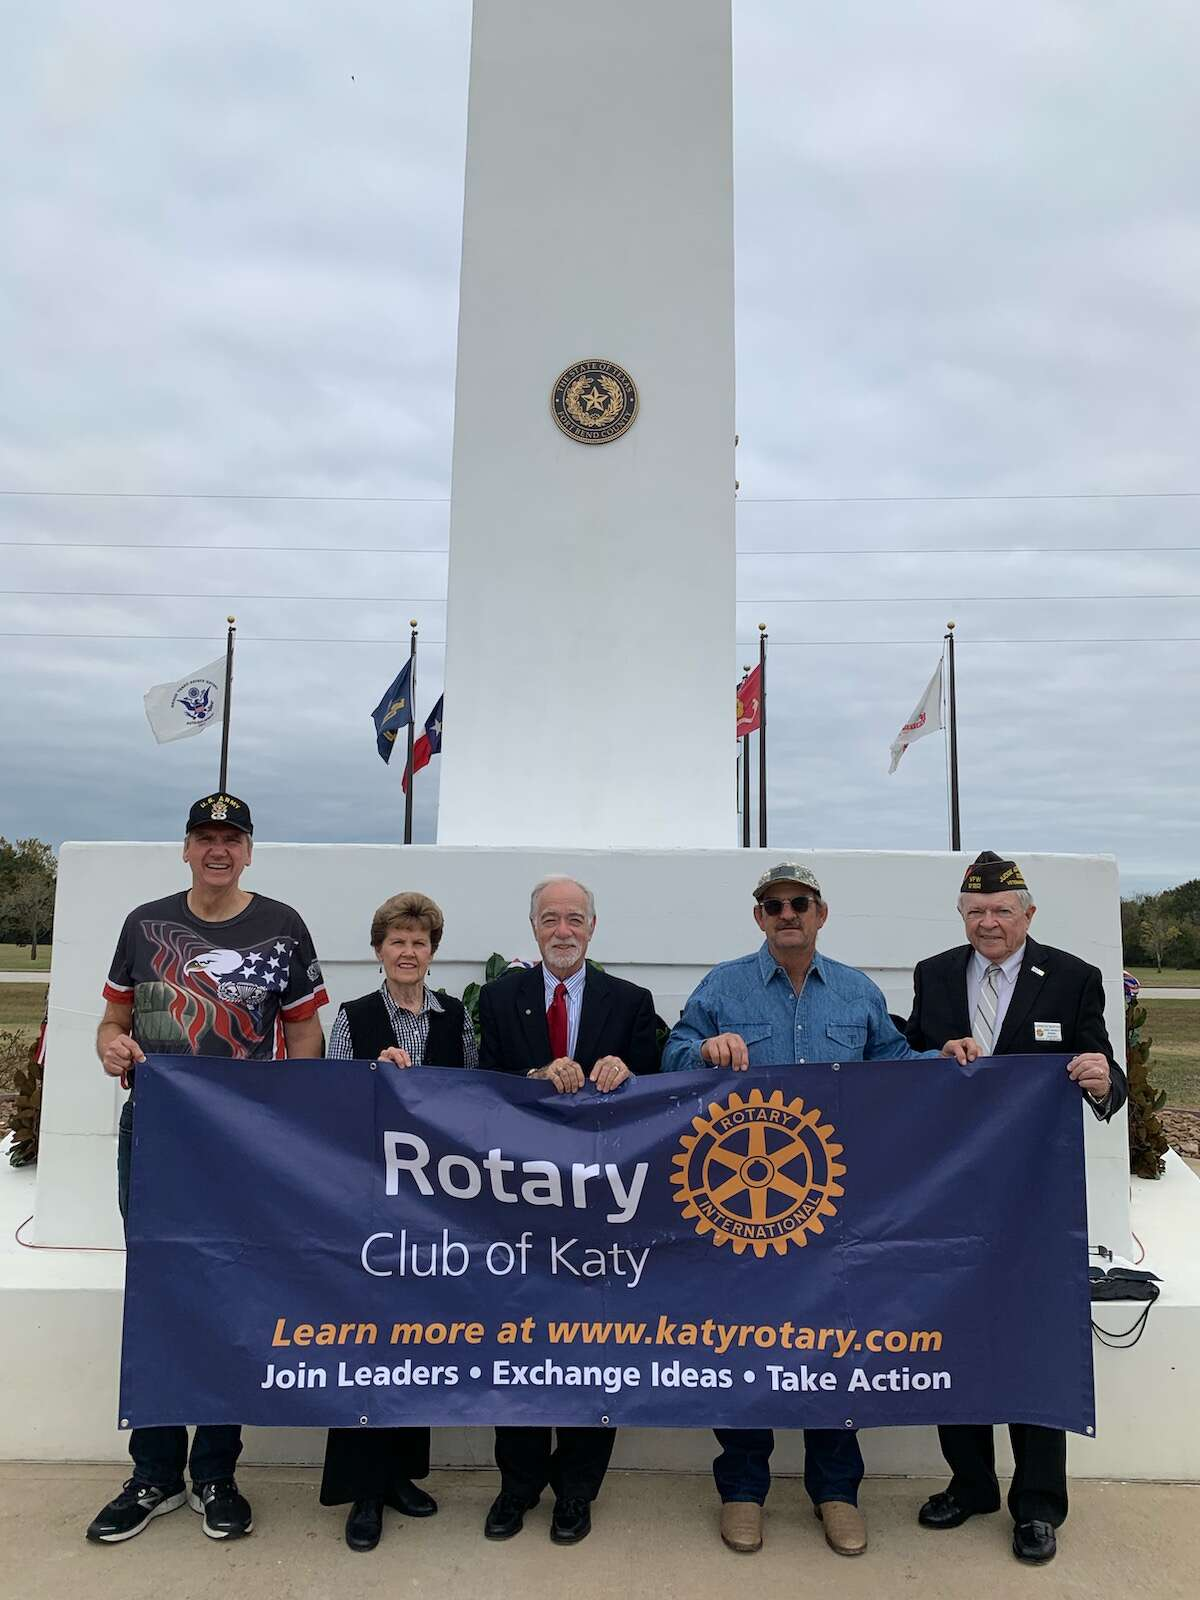 The Rotary Club of Katy and Katy Veterans of Foreign Wars Post 9182 observed Veterans Day on Nov. 11 at Armed Forces Memorial Tower in Fort Bend County Freedom Park. Rotarians participating included, from left: George Yeiter, Beverly Yeiter, David Frishman, Jeff Pantle, the tower general contractor; and Ken Burton.